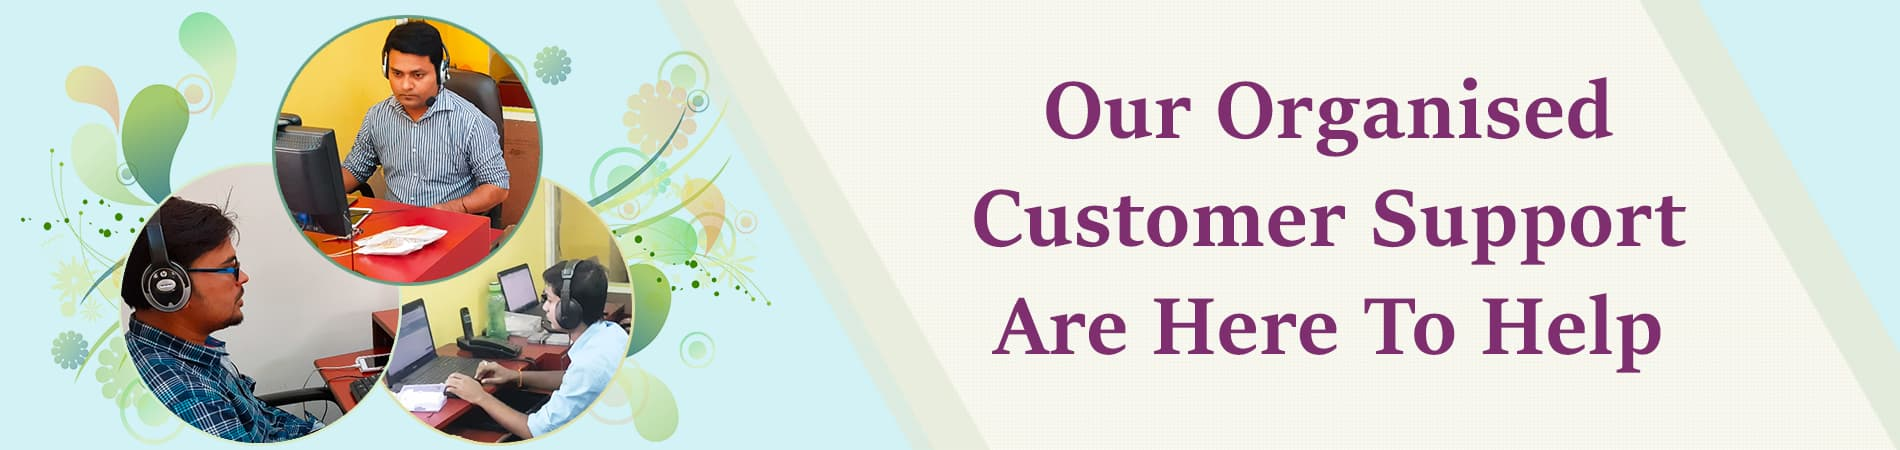 1598944336_1580713515_Contact_Our_Organised_Customer_Support_Are_Here_To_Help.jpg